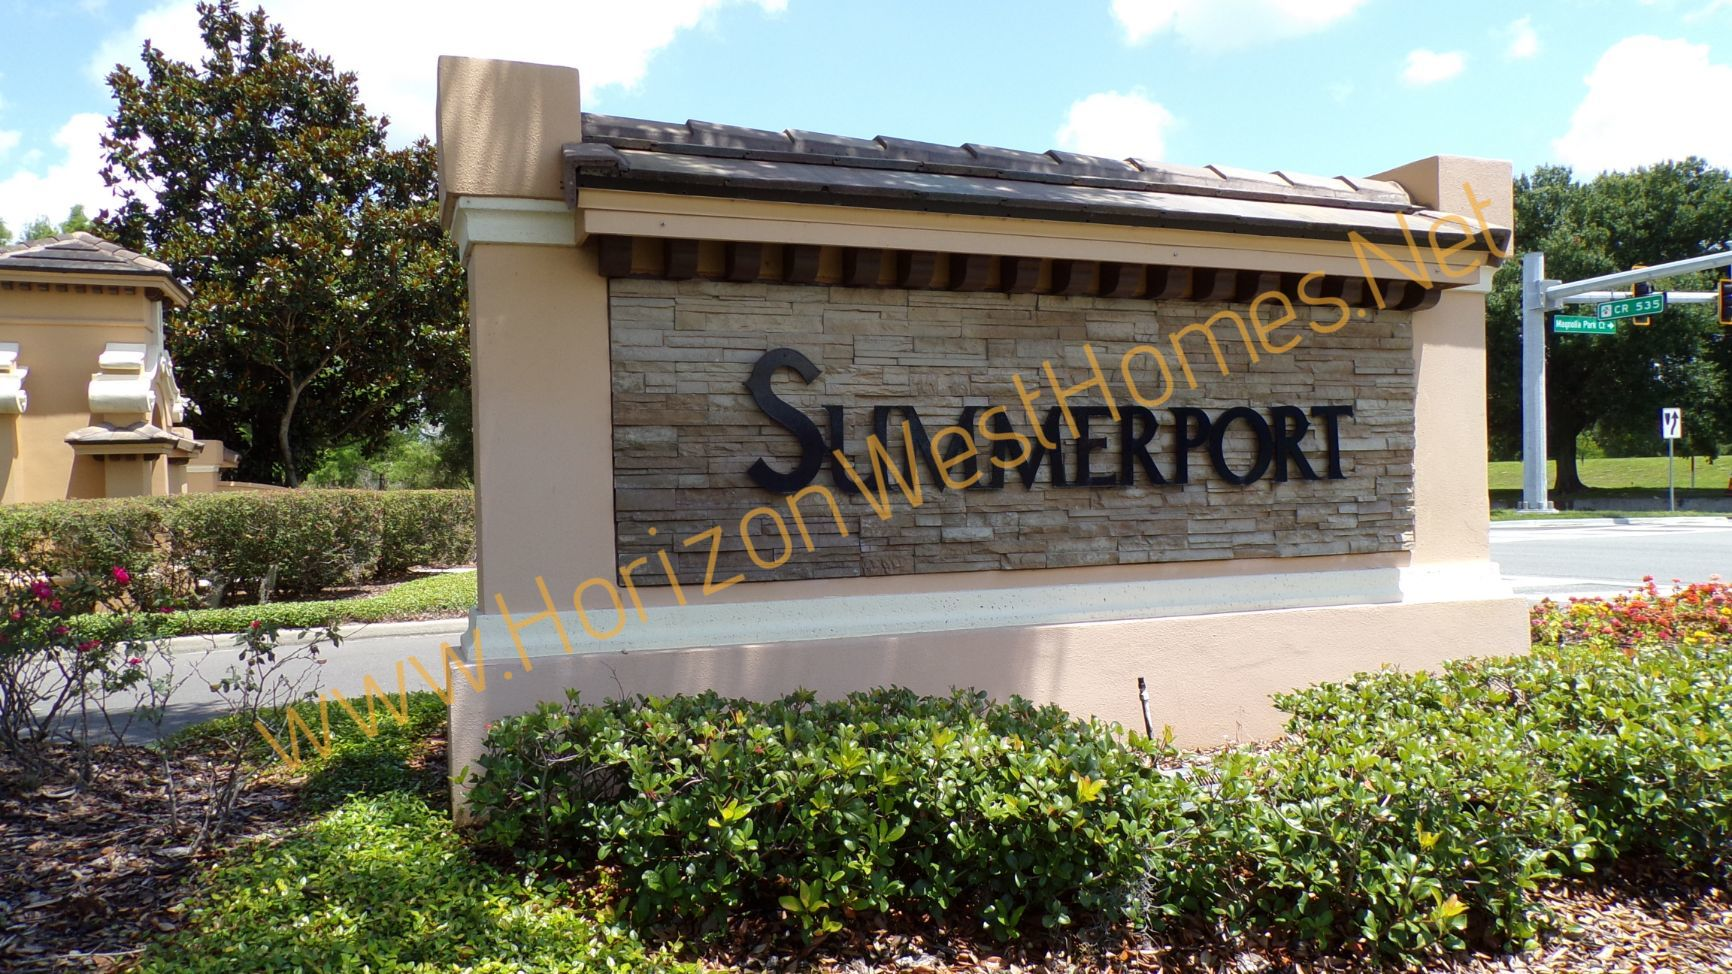 Summerport Community WIndermere Florida. Entrance sign.